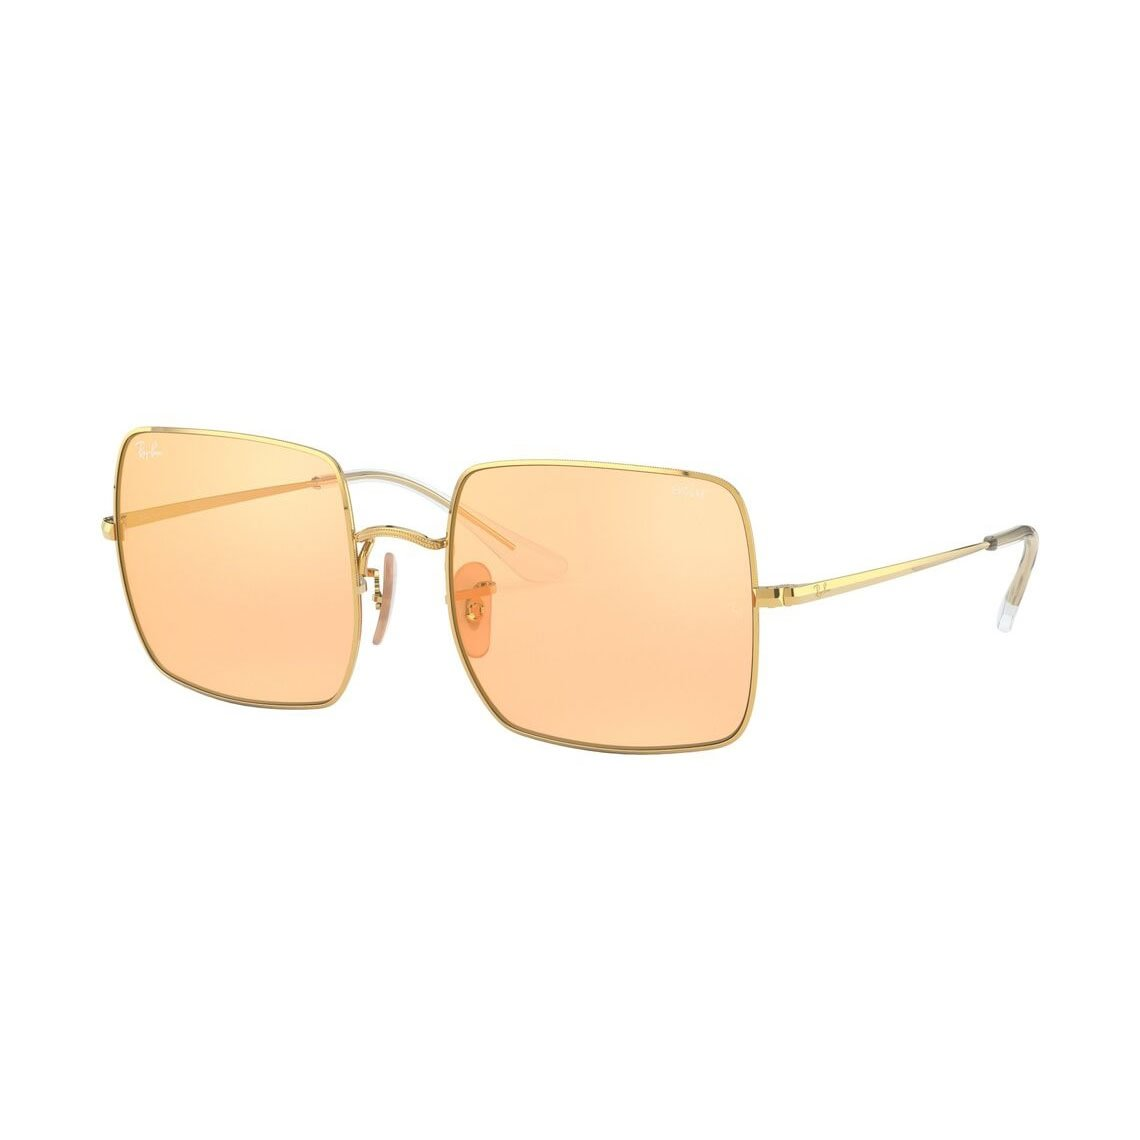 Ray-Ban Square 1971 Mirror Evolve  RB1971 001/B4 54